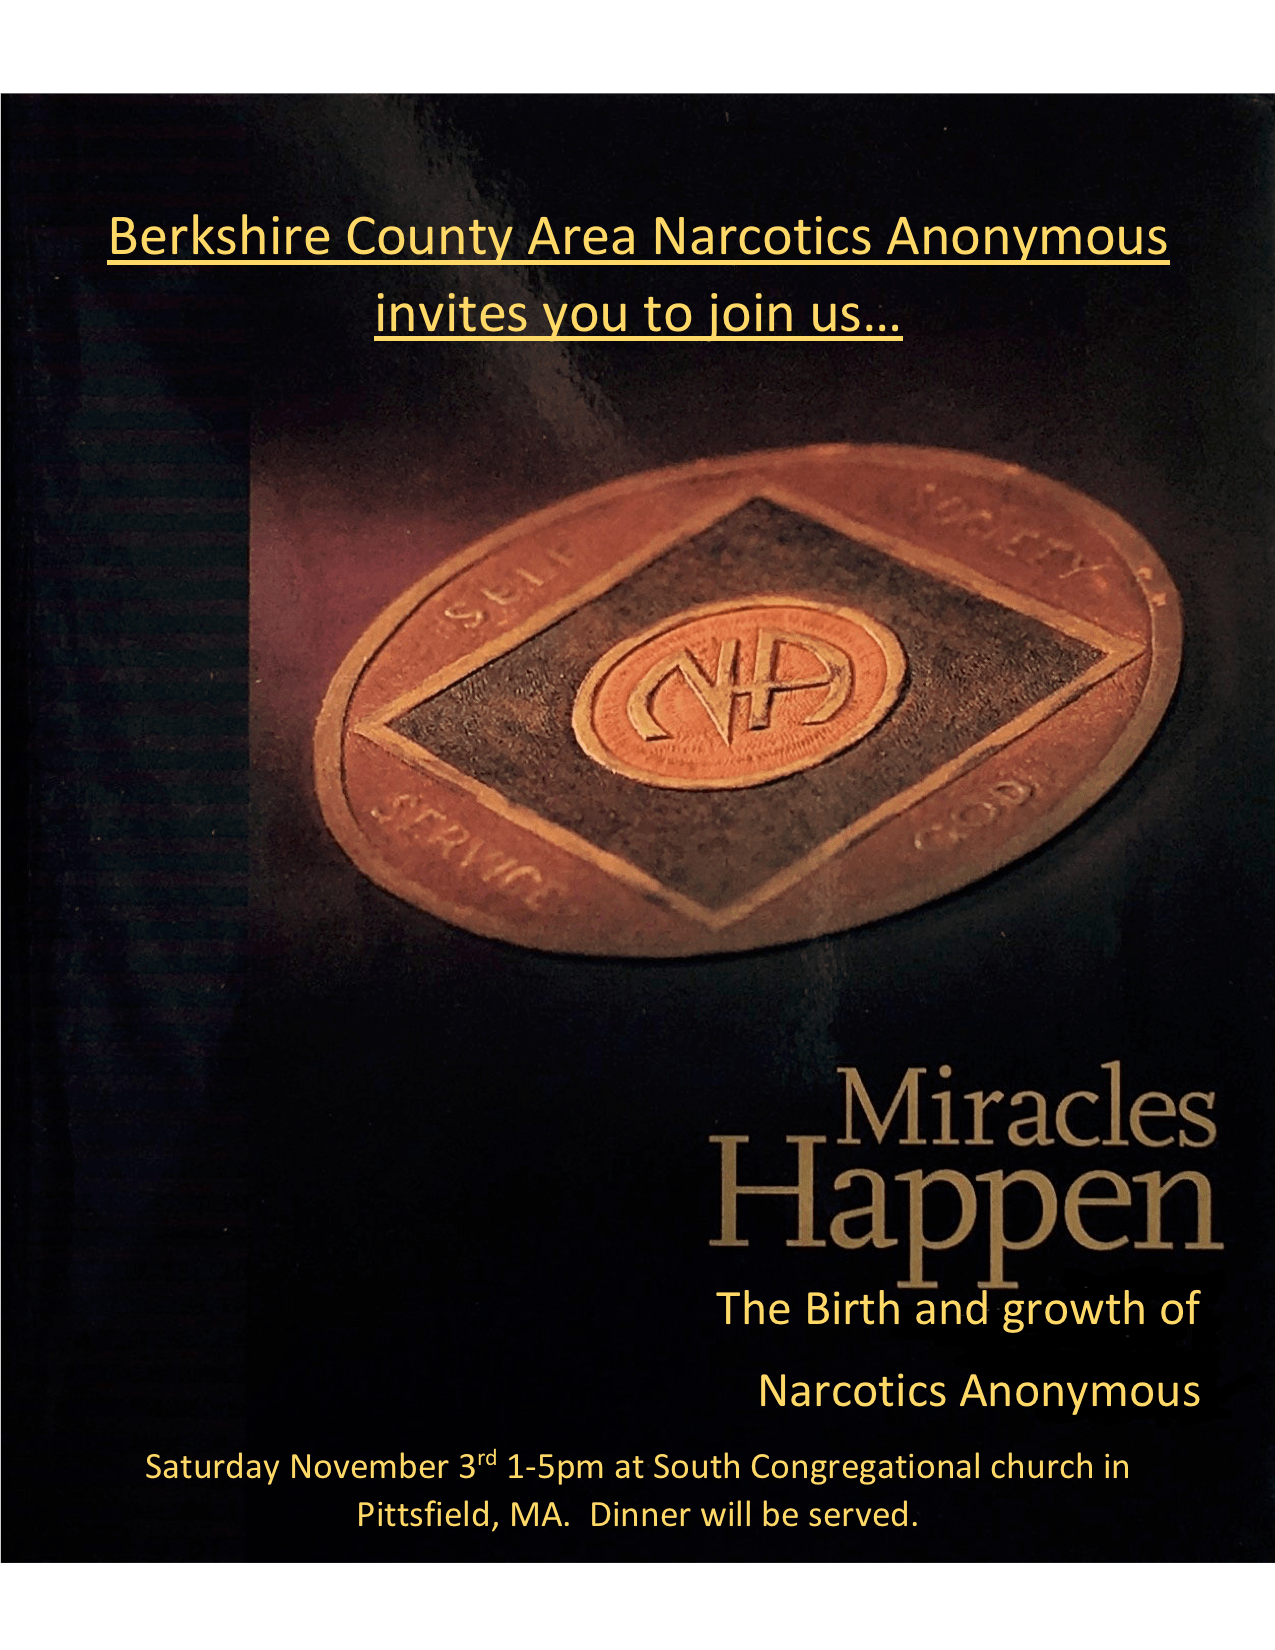 Miracles Happen: The Birth and Growth of Narcotics Anonymous @ South Congregational Church | Pittsfield | Massachusetts | United States